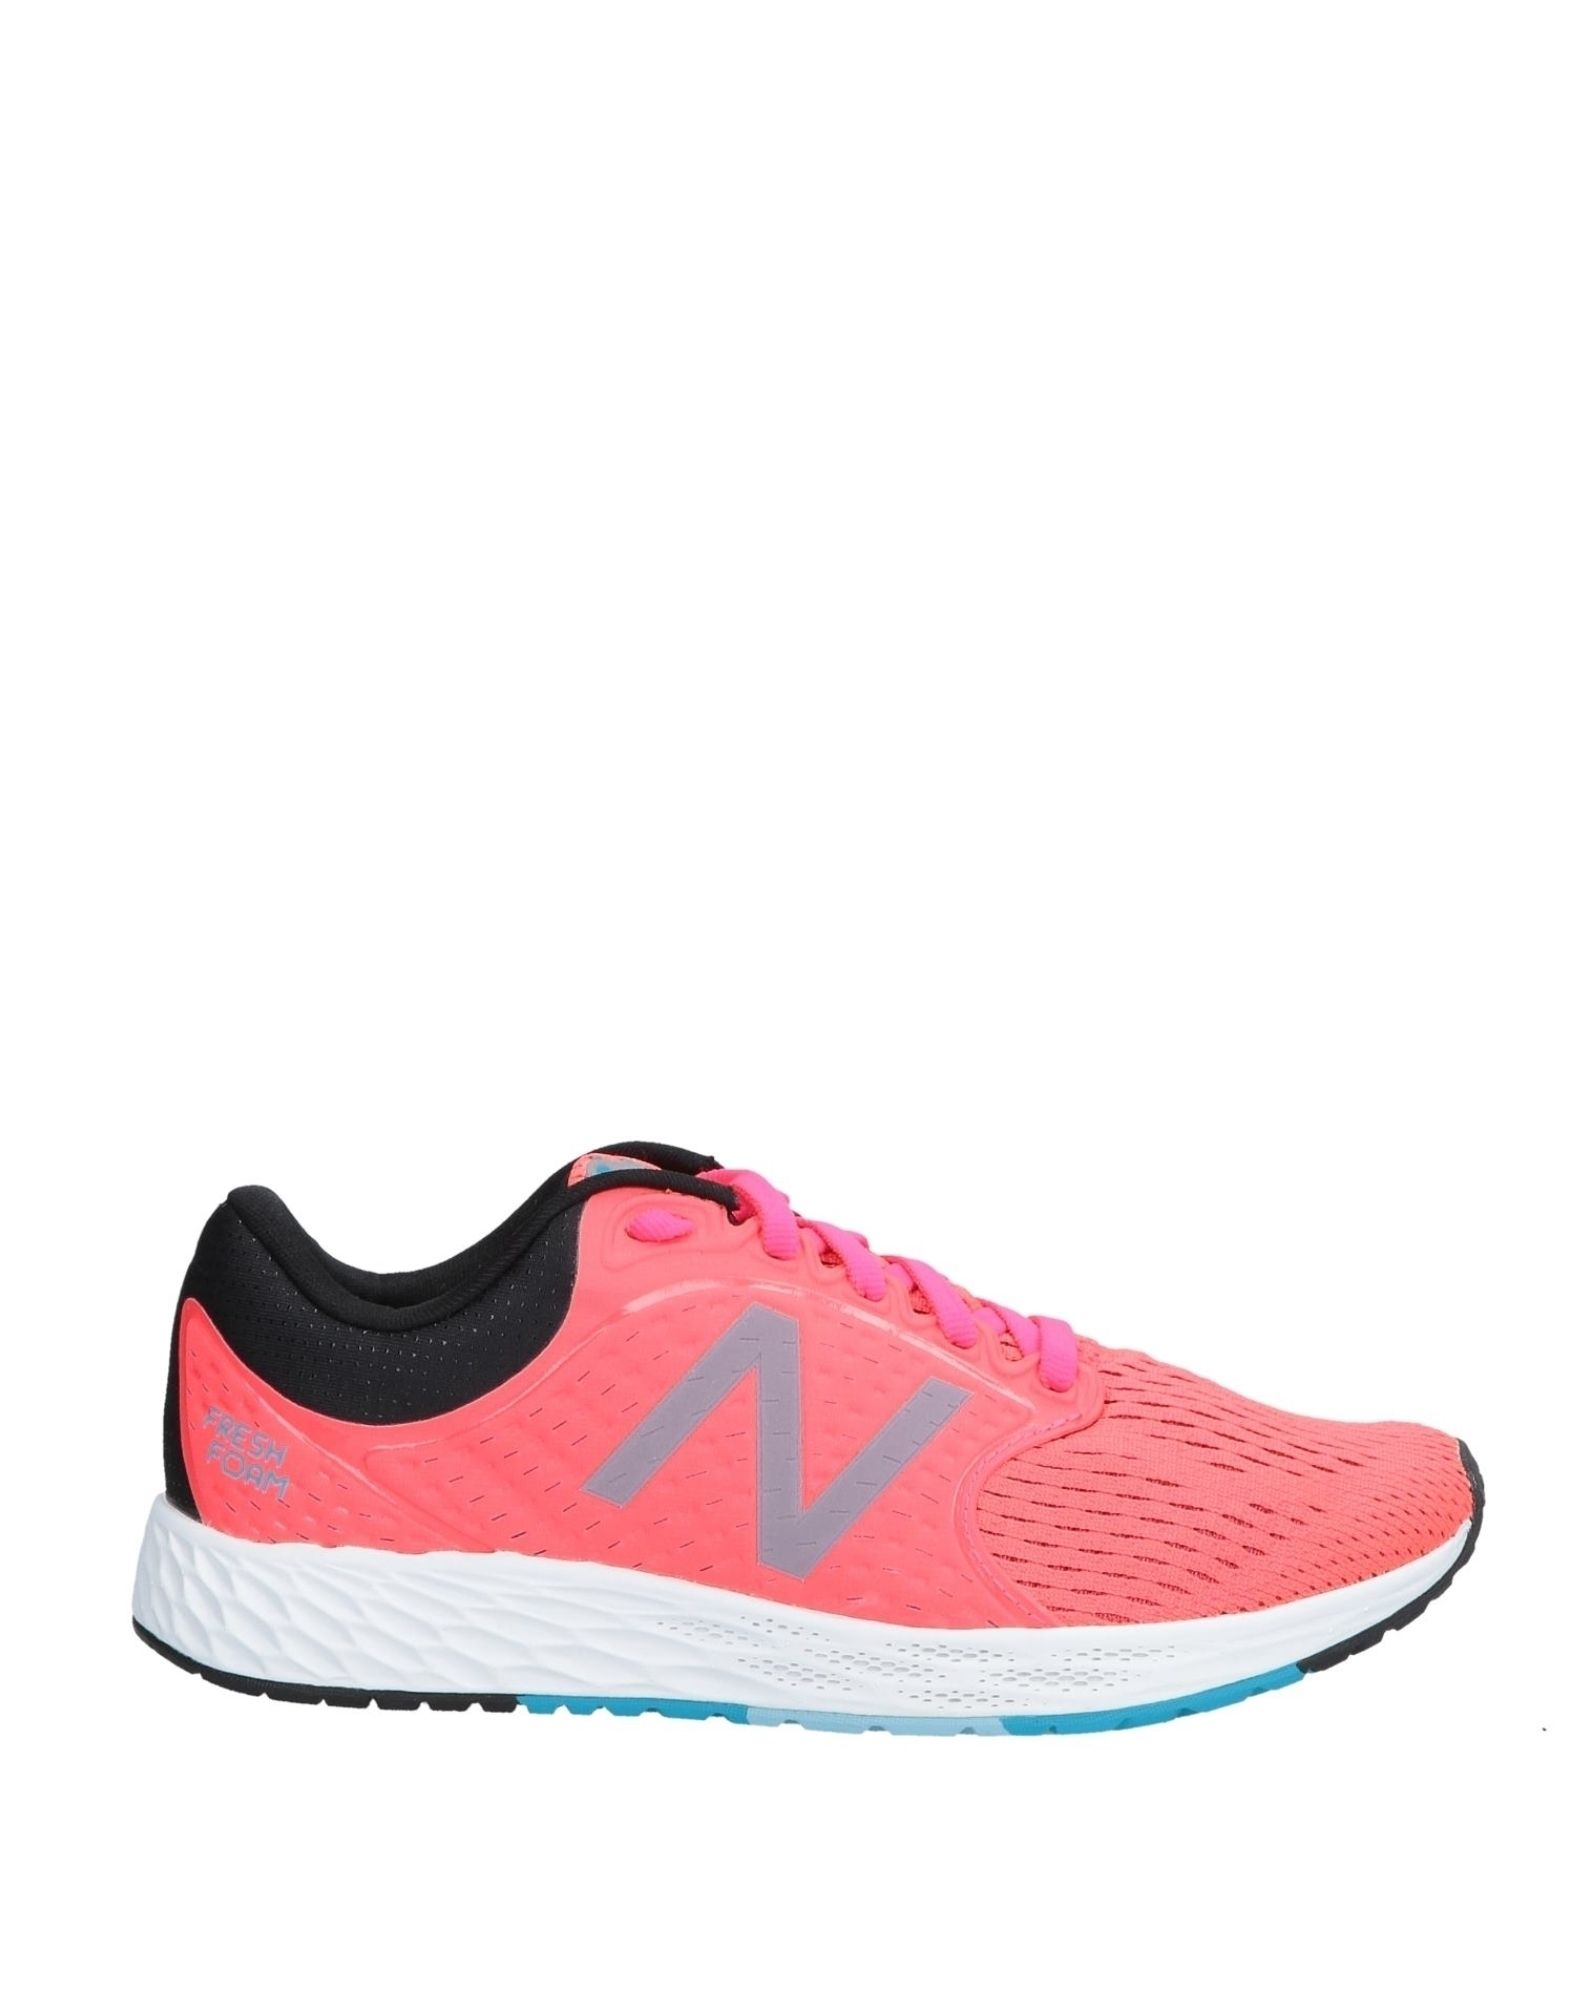 New New Balance Sneakers - Women New New Balance Sneakers online on  United Kingdom - 11569835IF 38546c